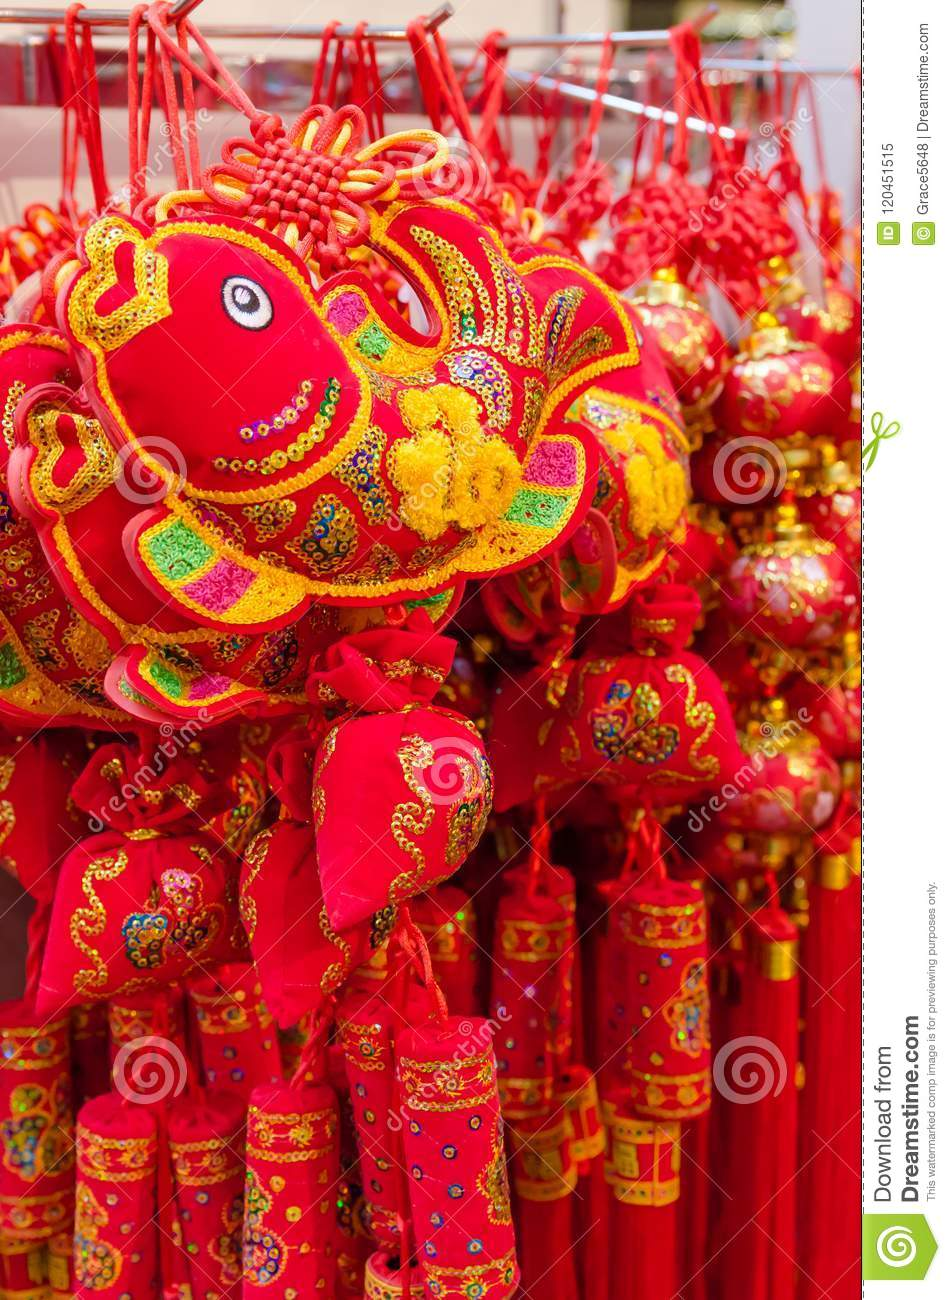 Chinese new year decorations selling in the store stock image chinese new year decorations selling in the store m4hsunfo